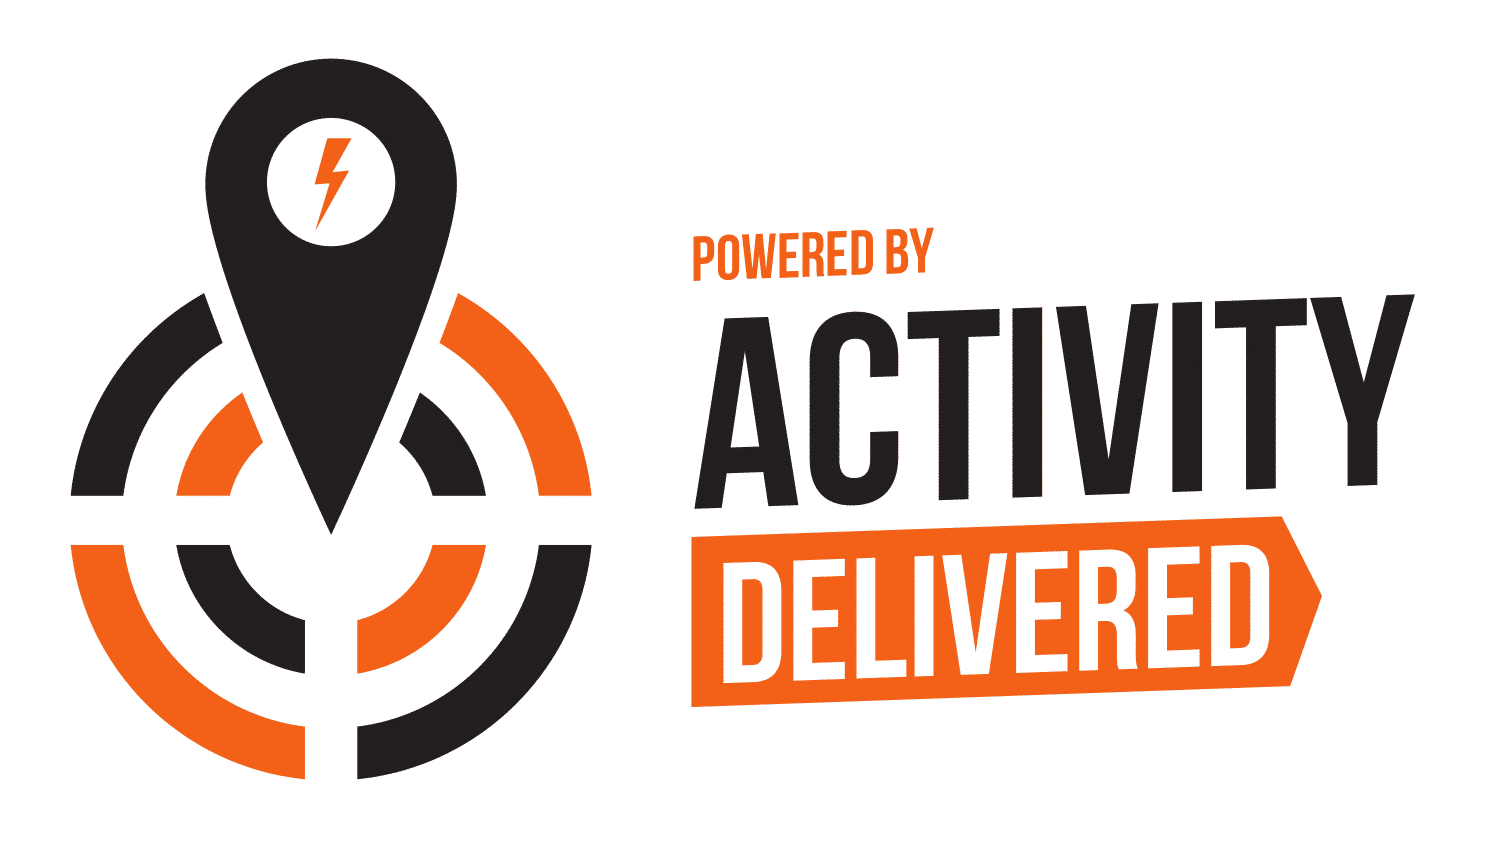 The Activity Delivered logo powered by